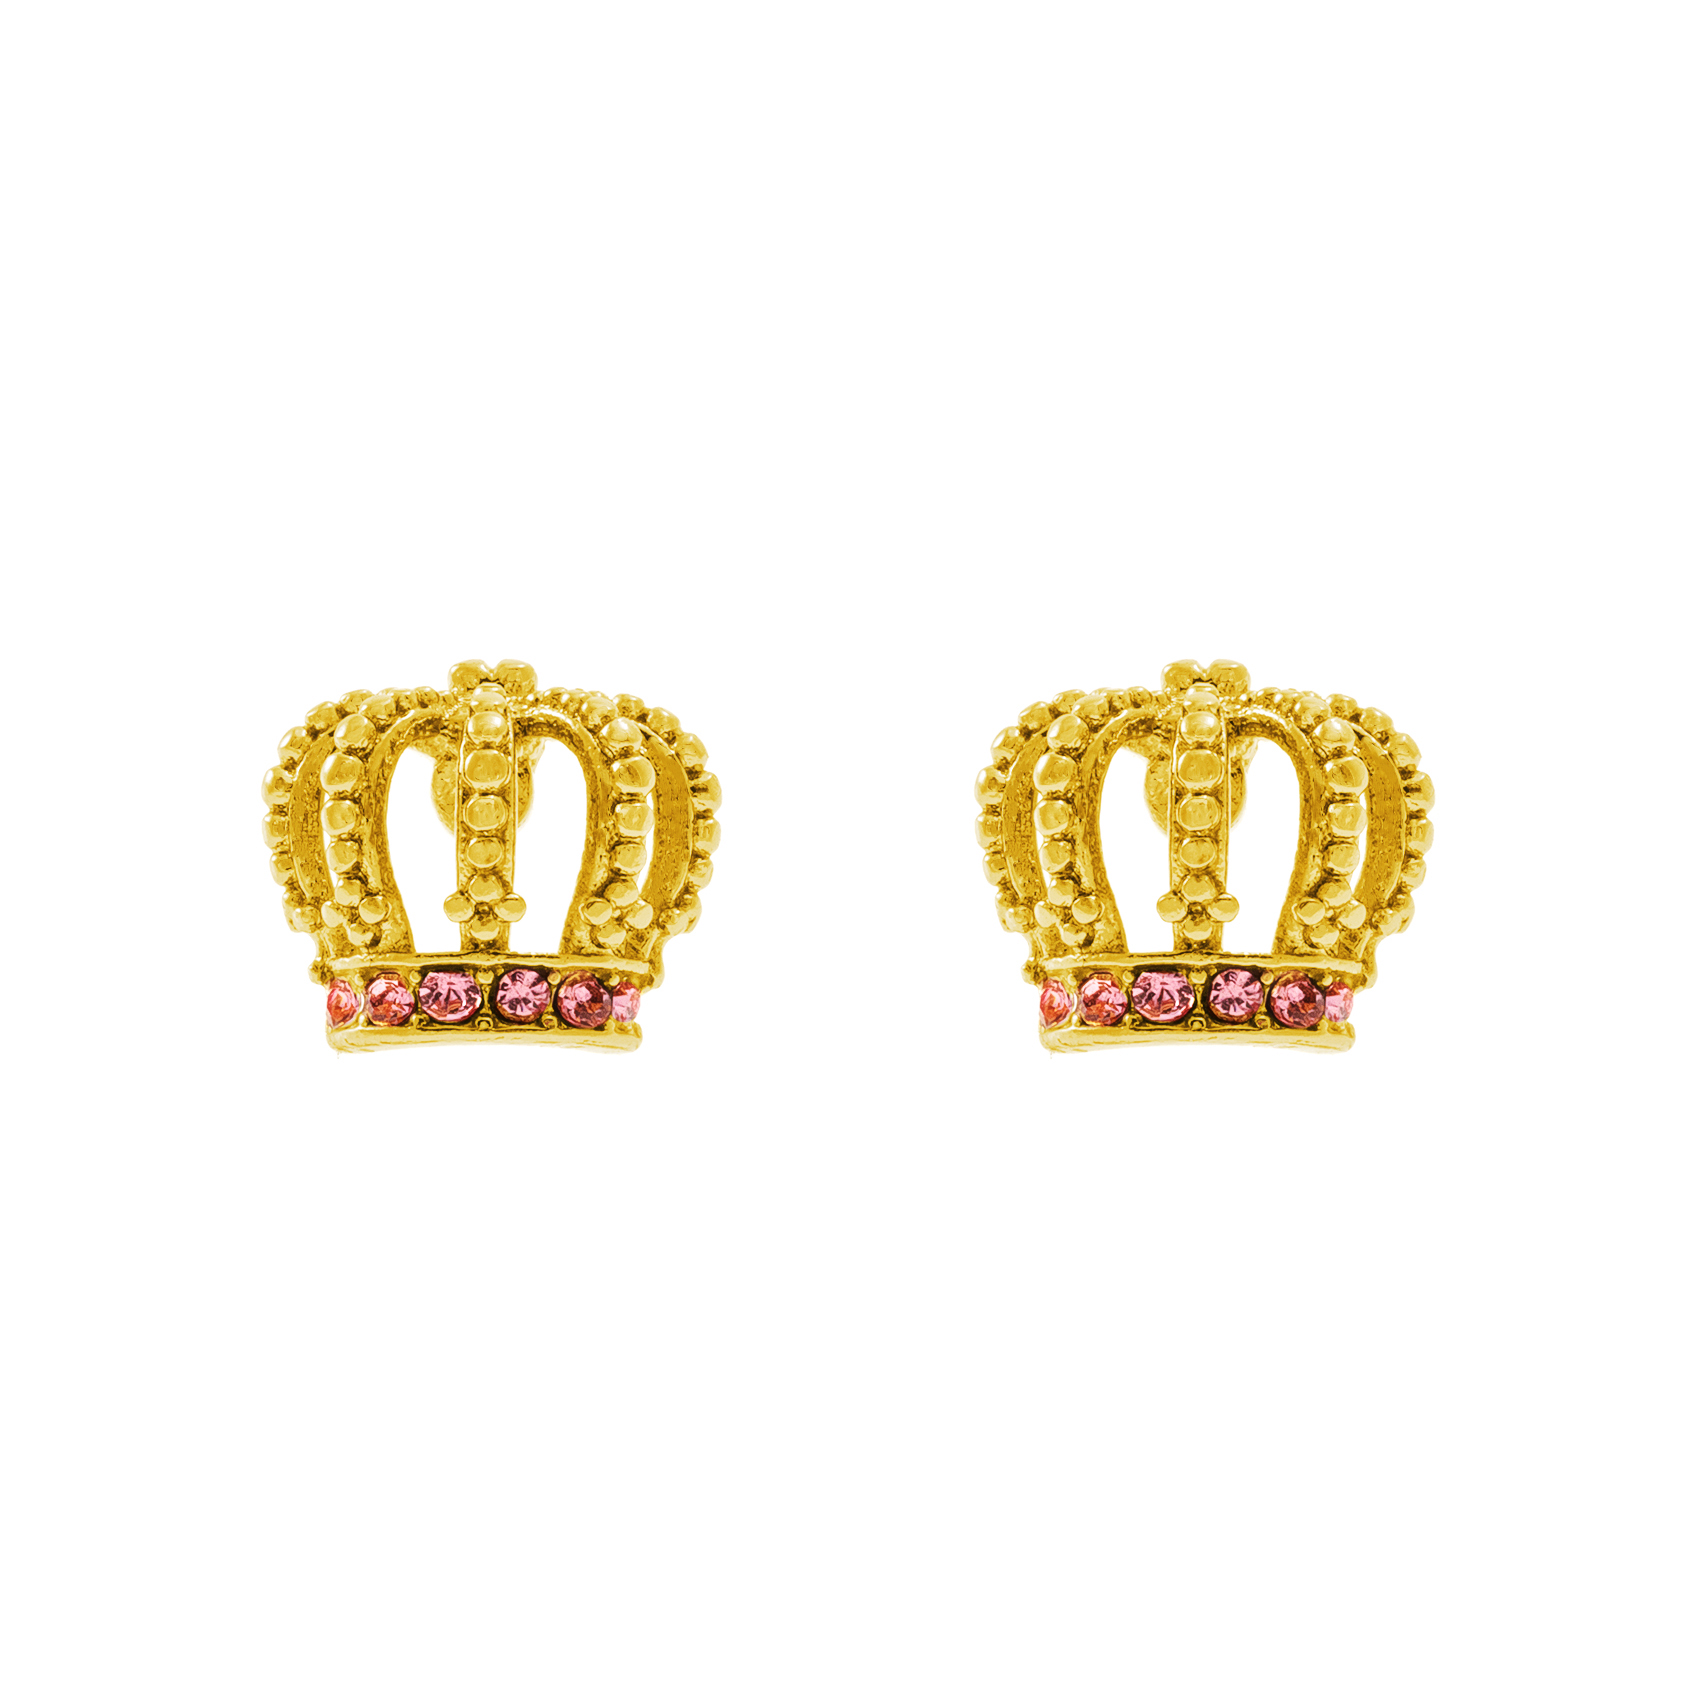 JUICY COUTURE – Σκουλαρίκια JUICY CROWN JUICY COUTURE